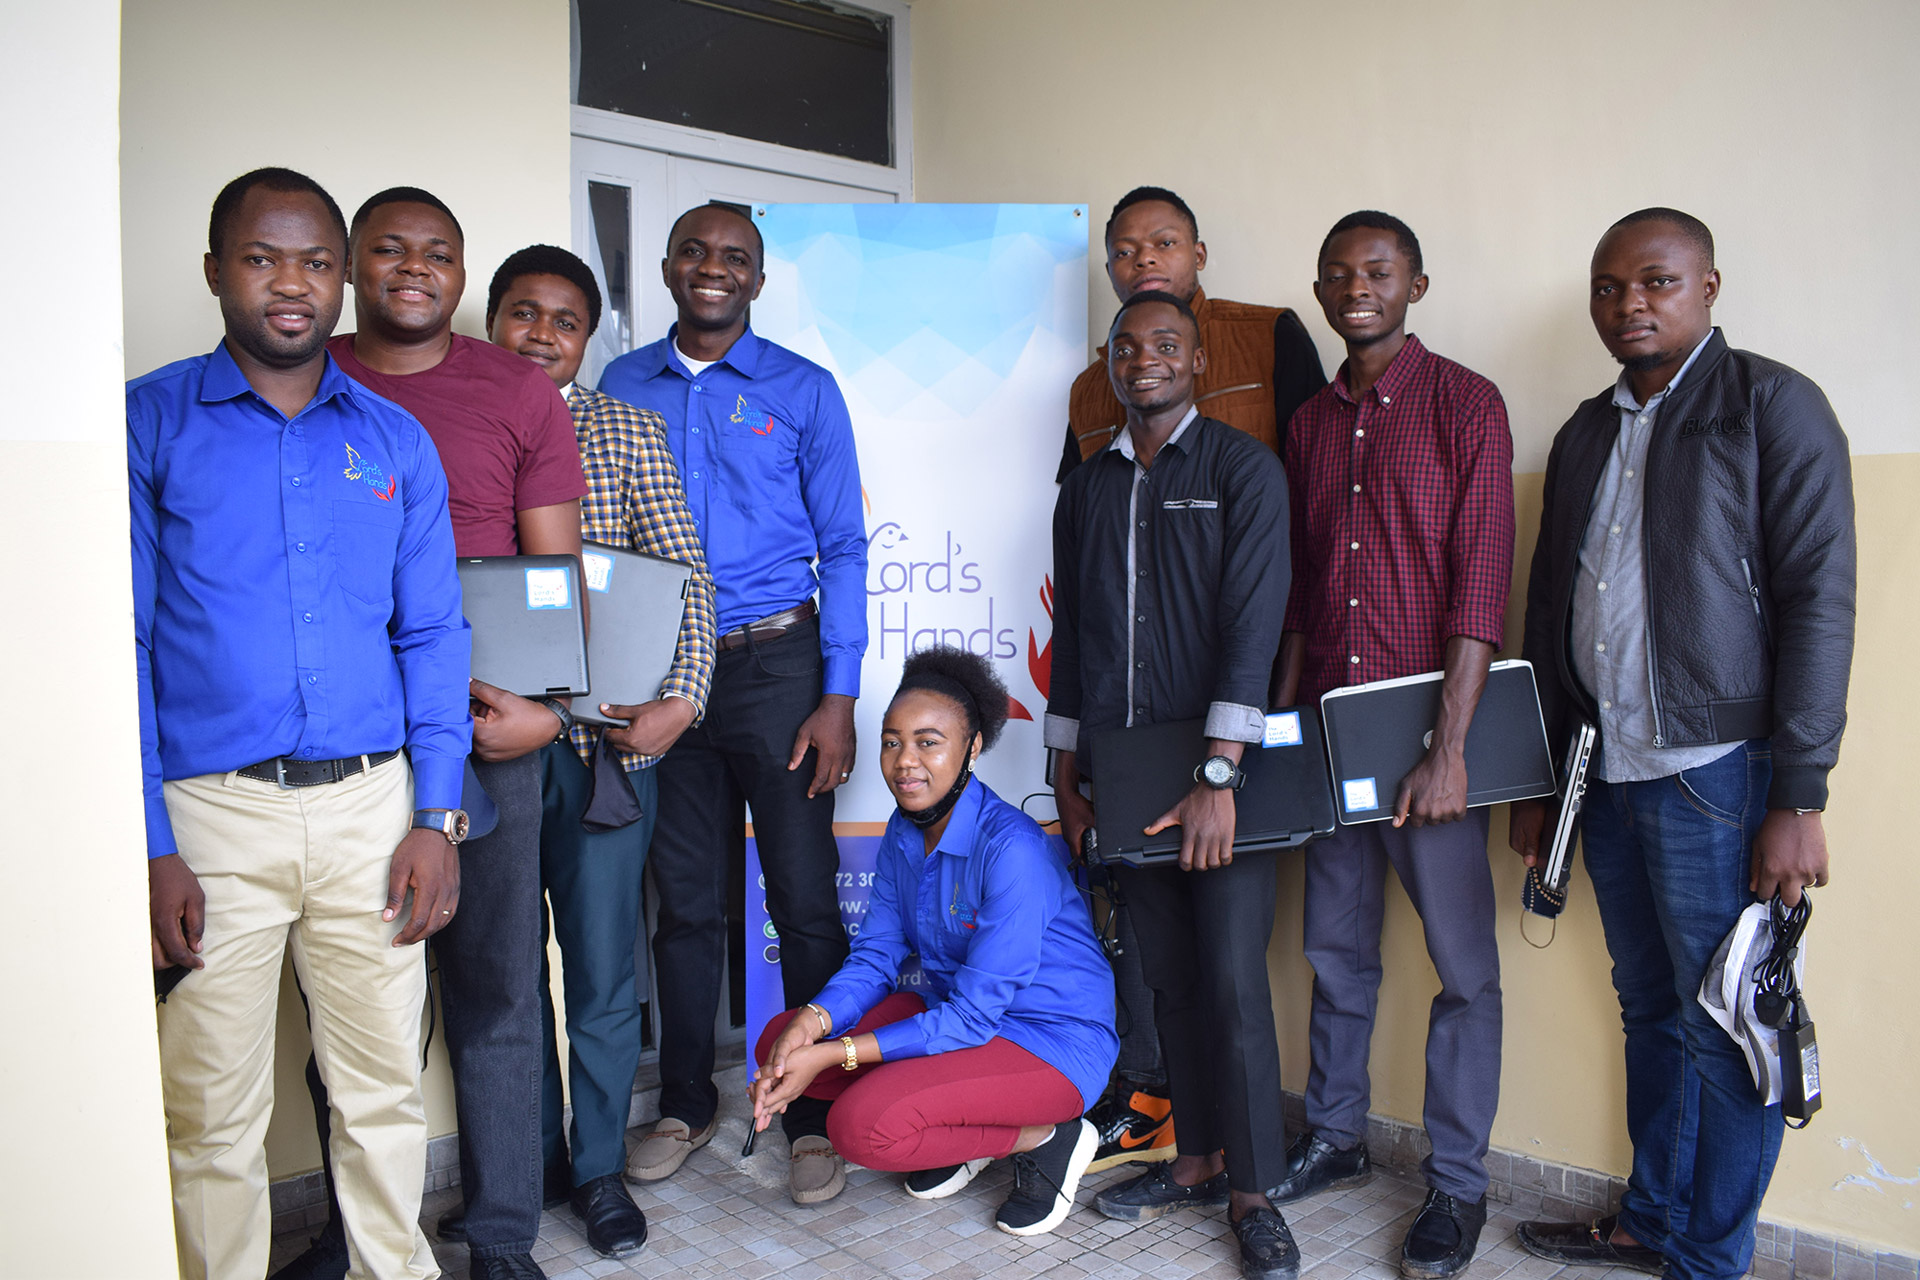 The Lord's Hands Laptop Scholarship Program